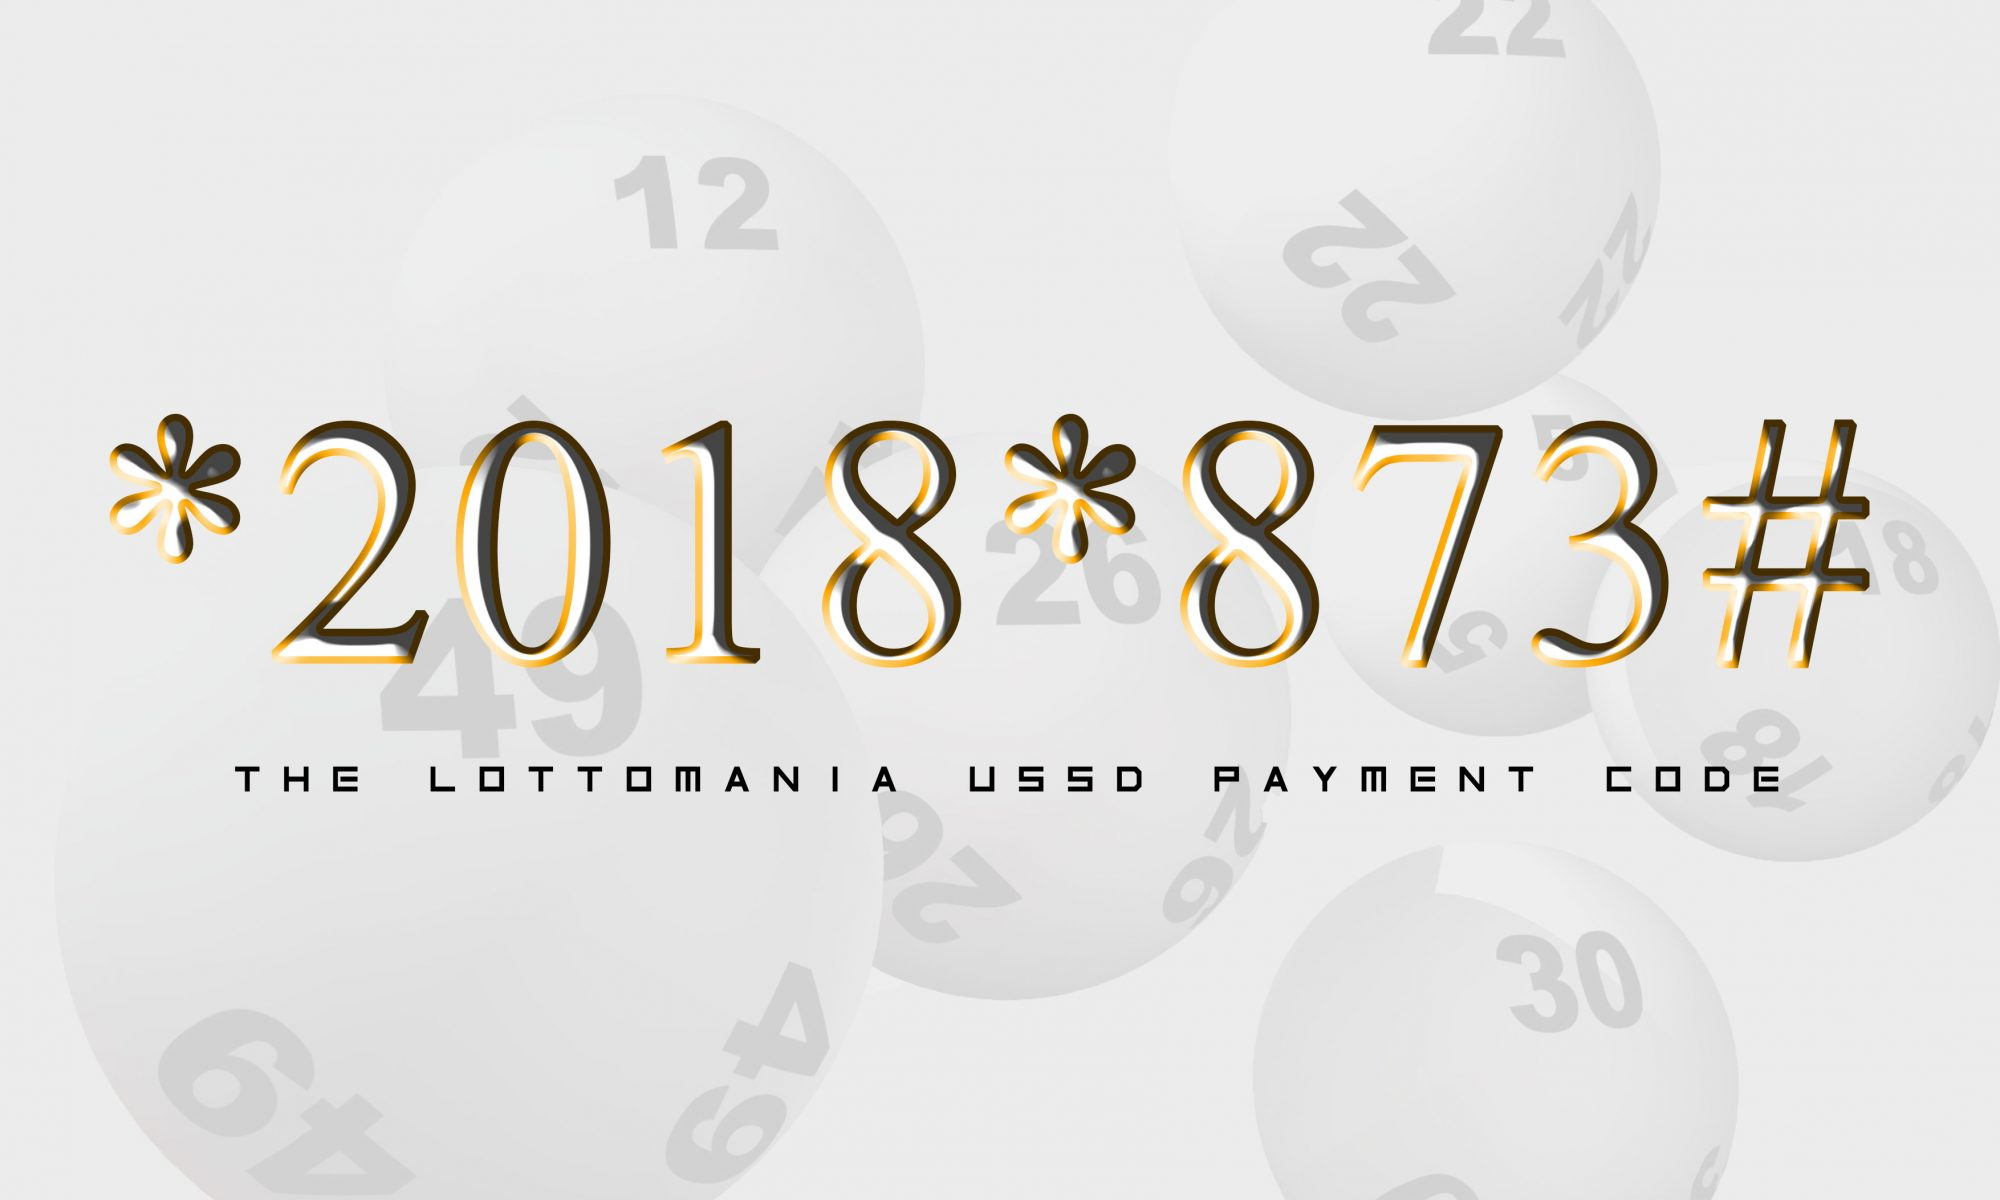 Lotto ussd code